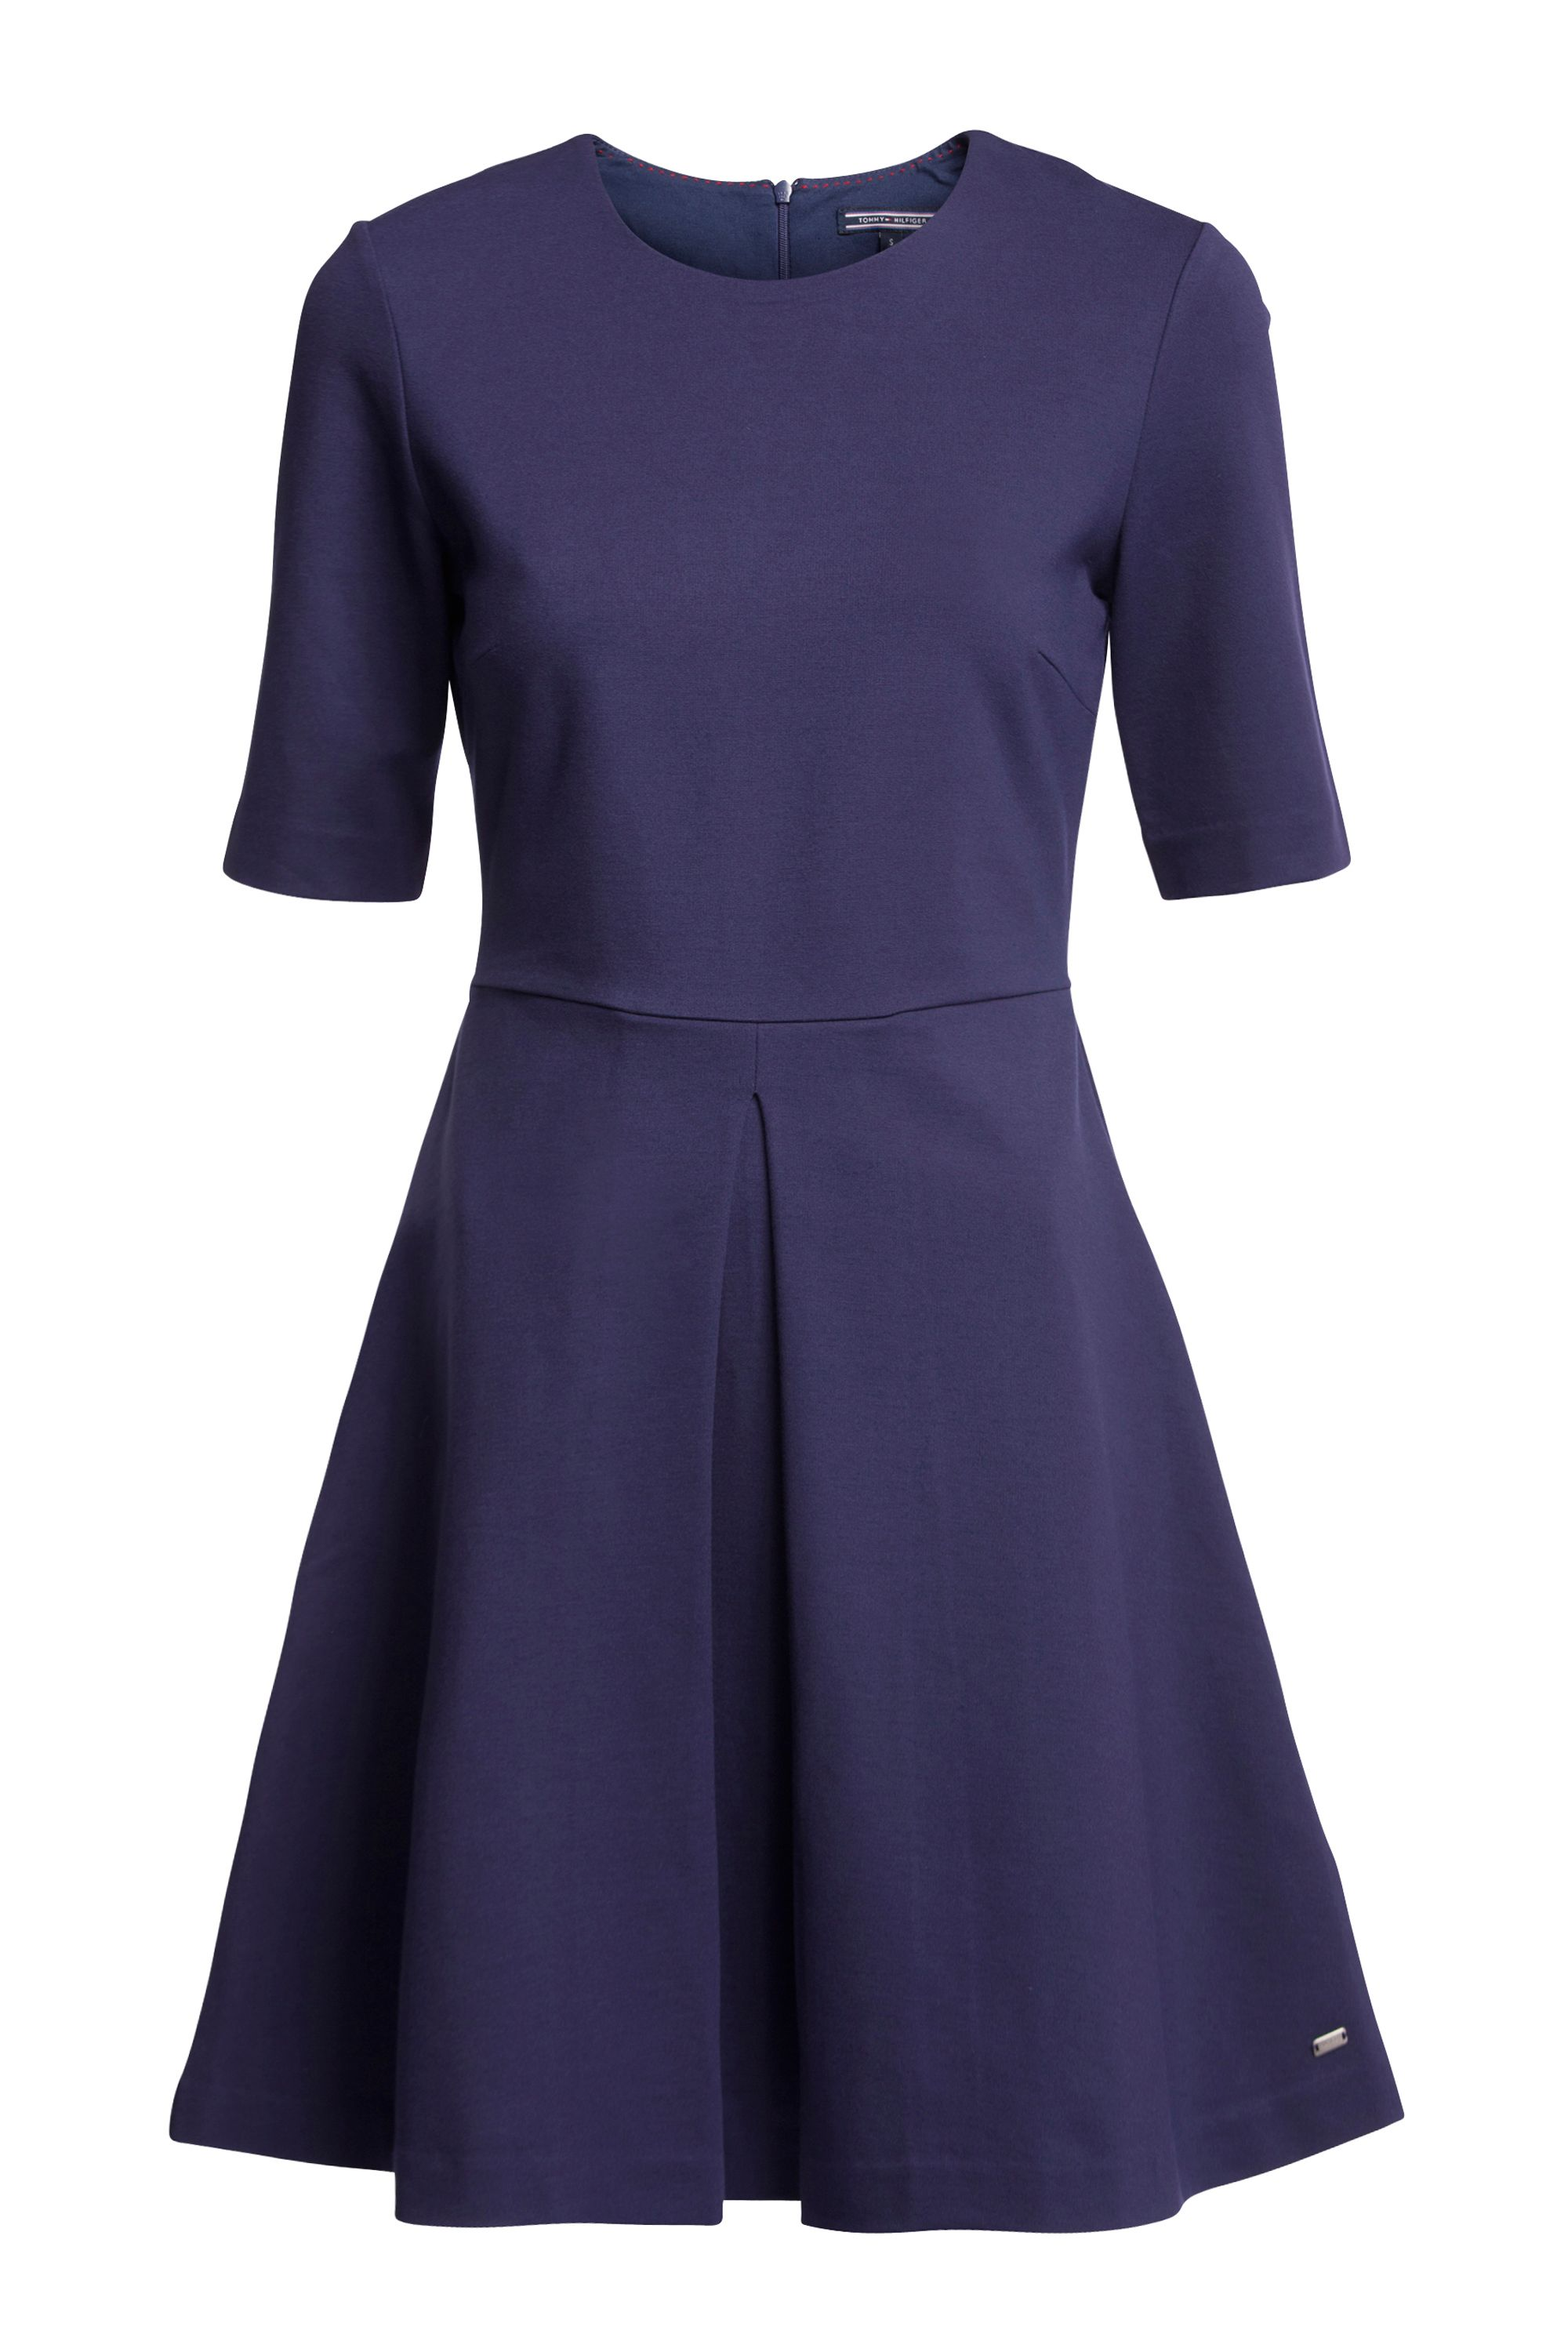 Tommy Hilfiger Selena Dress, Blue